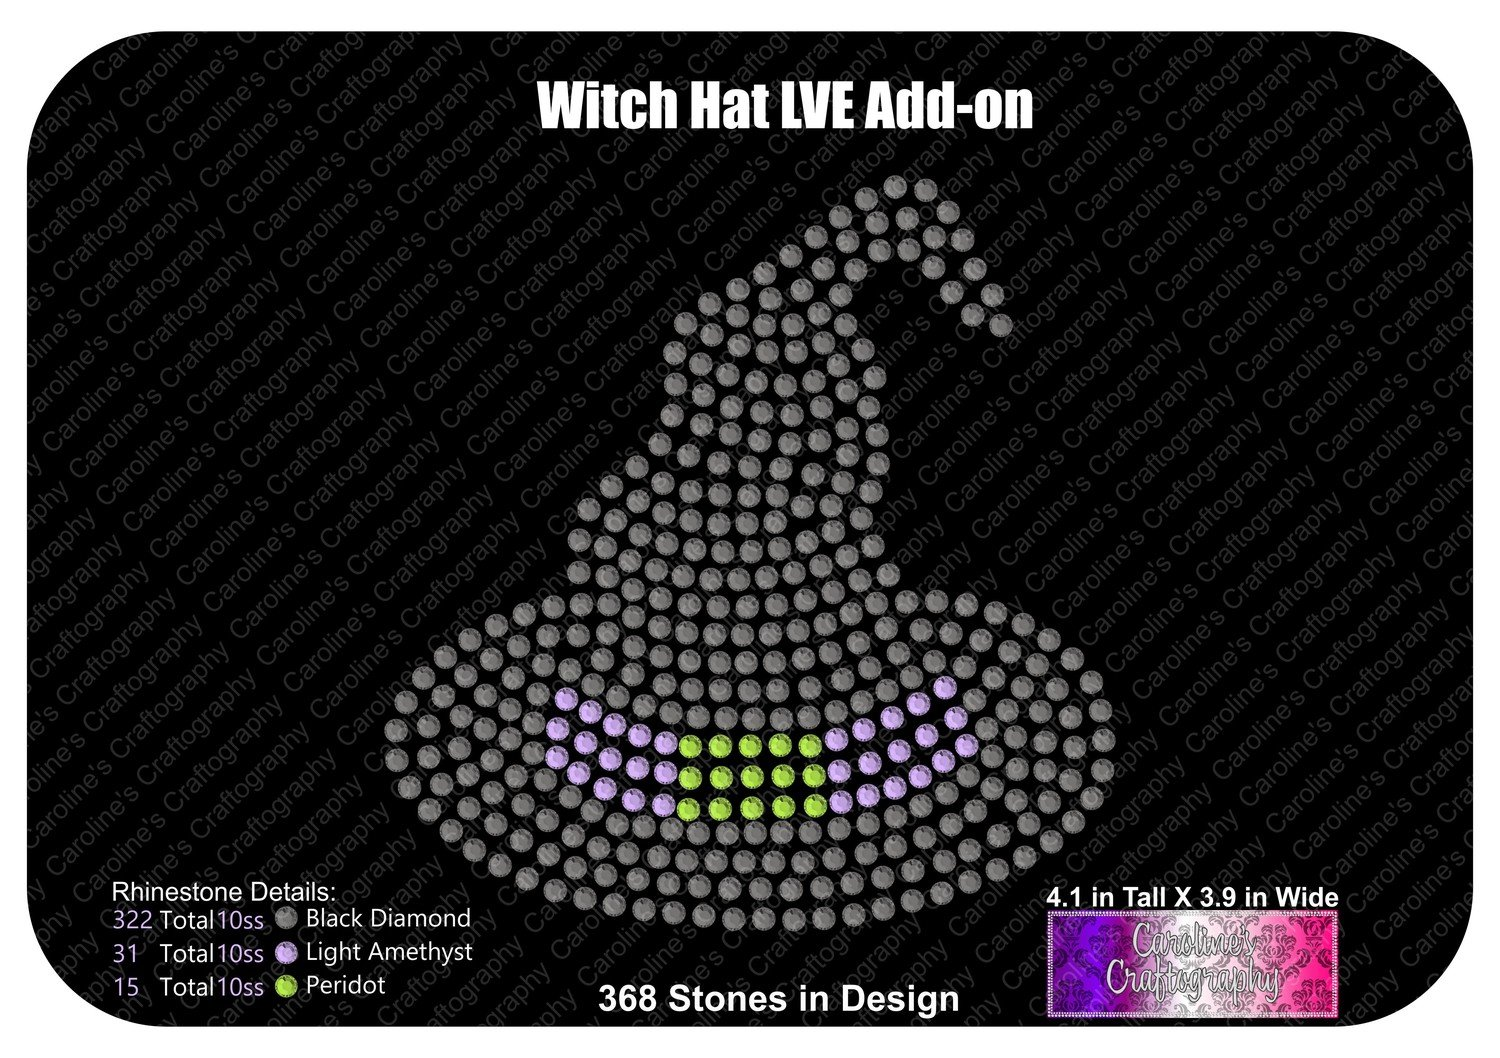 Witchy Hat LVE Add-on Stone